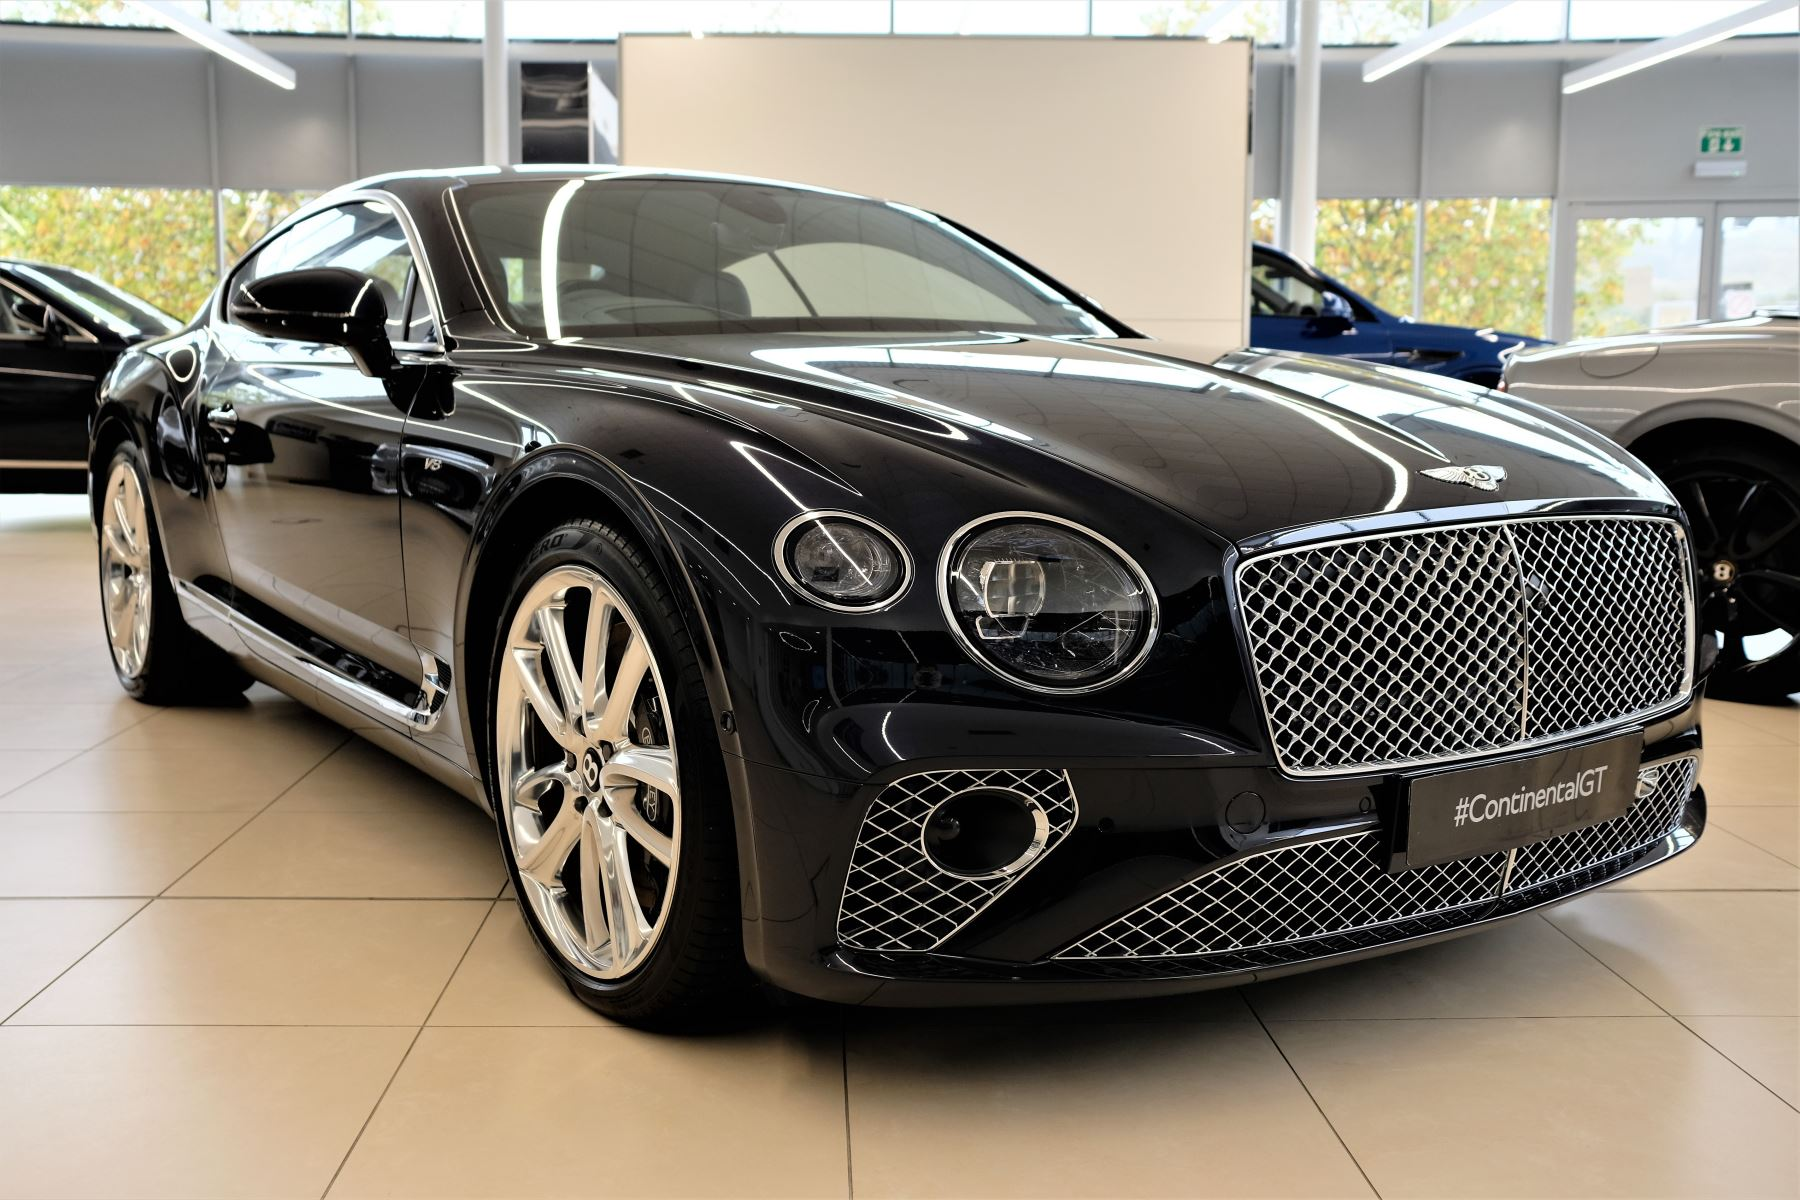 Bentley Continental GT 4.0 V8 Mulliner Edition Auto [Tour Spec] Automatic 2 door Coupe (2020)